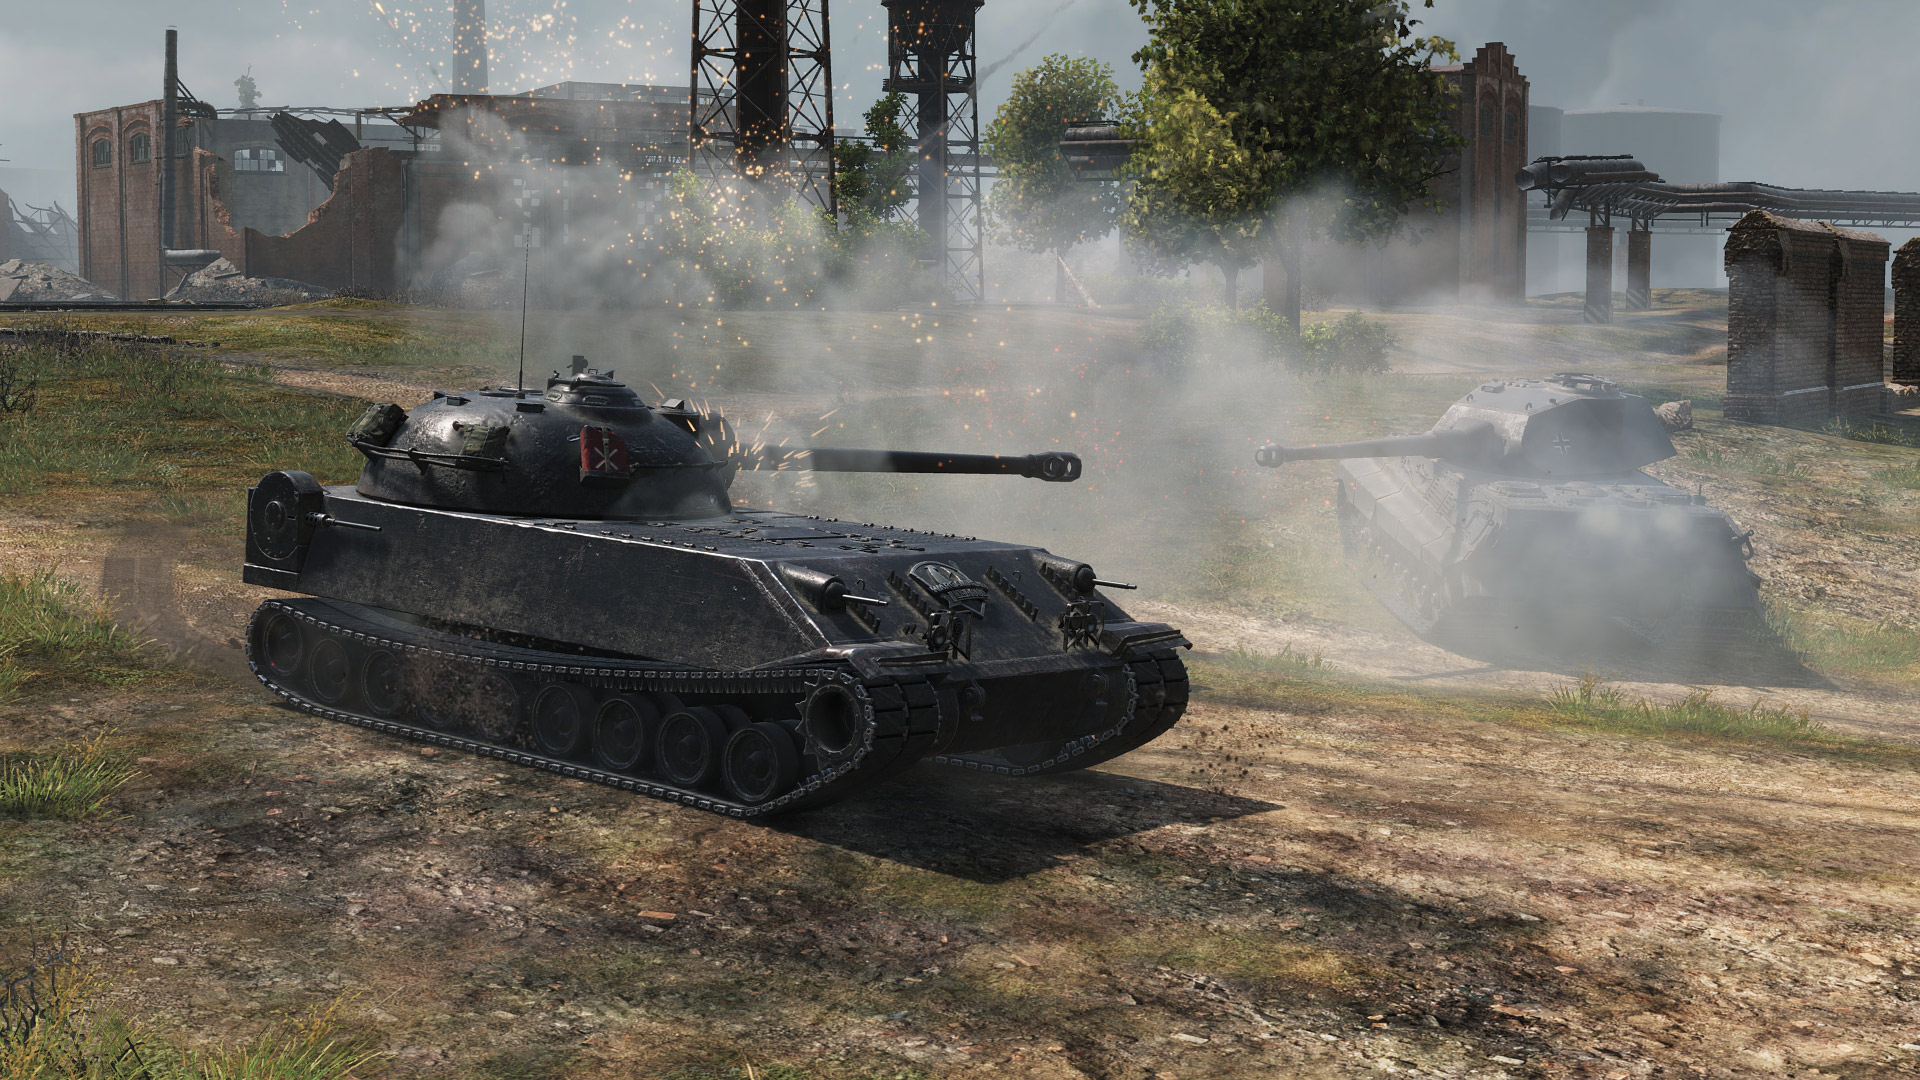 A Light or Medium tank can use their speed to quickly get behind the Chrysler and punish its weak rear armor.